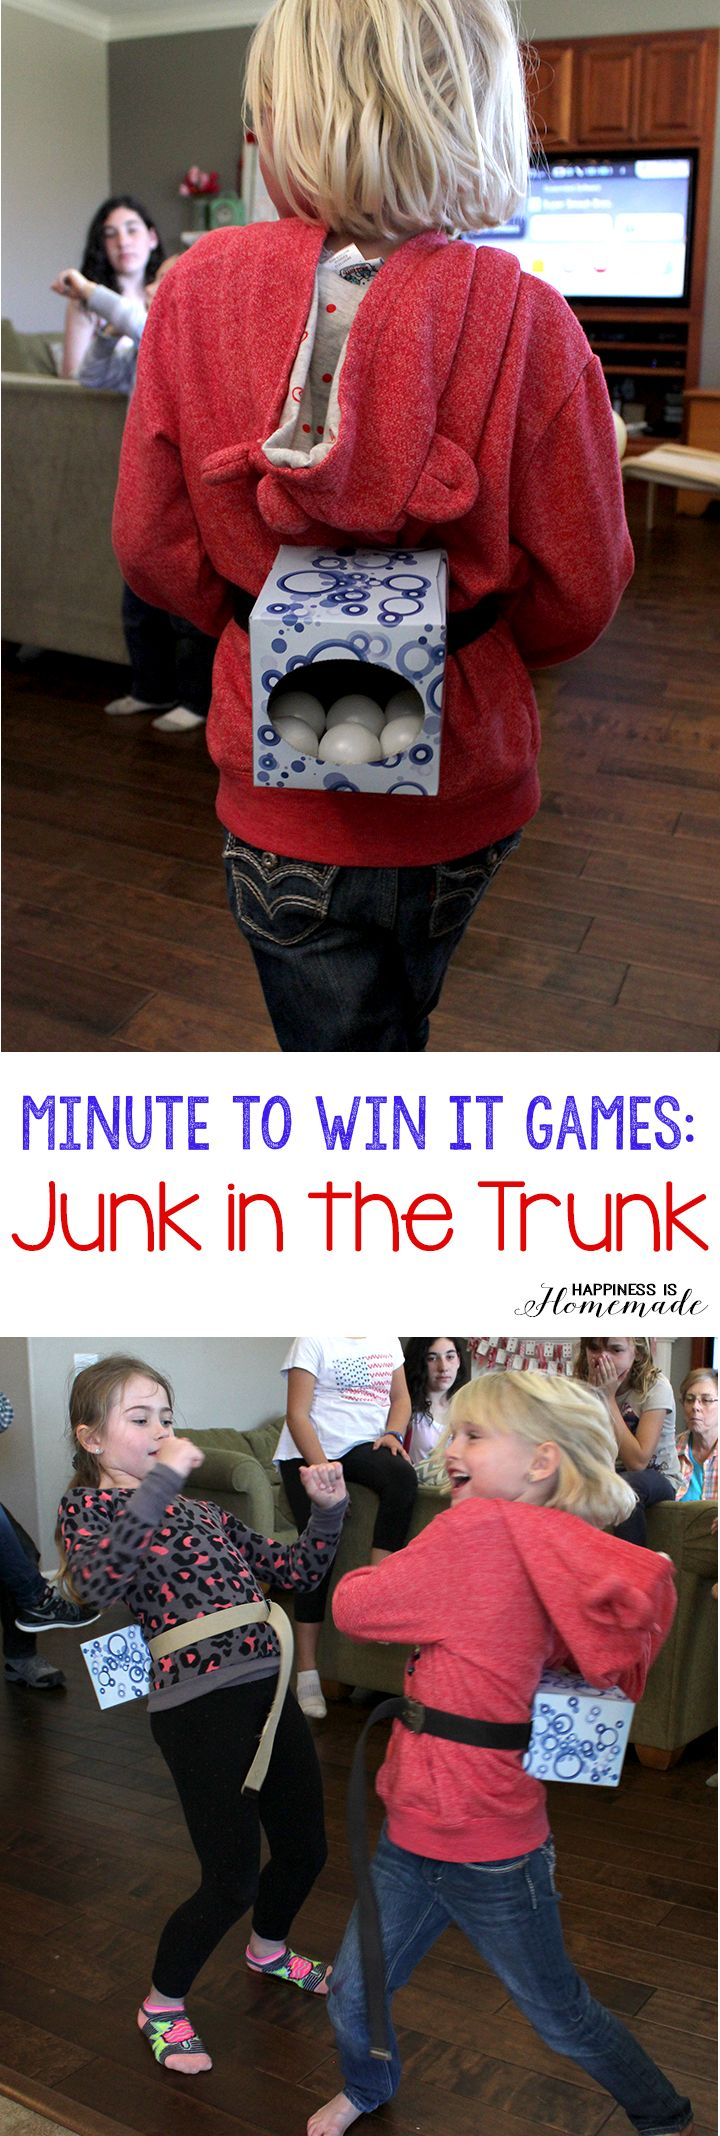 Minute to Win It Games - Junk in the Trunk #games